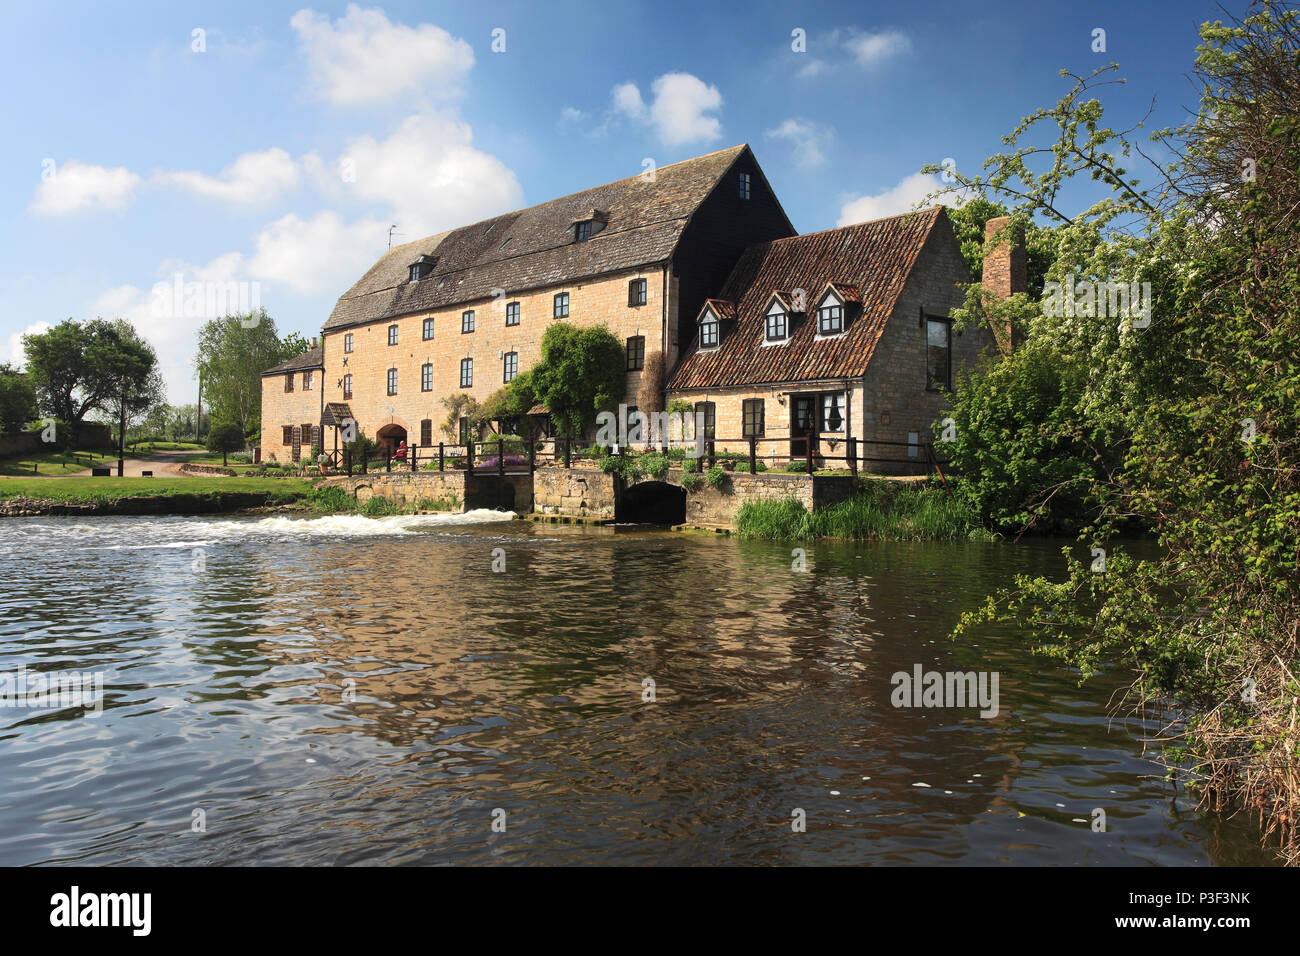 Water Newton Watermill, river Nene near Peterborough, Cambridgeshire, England; UK - Stock Image